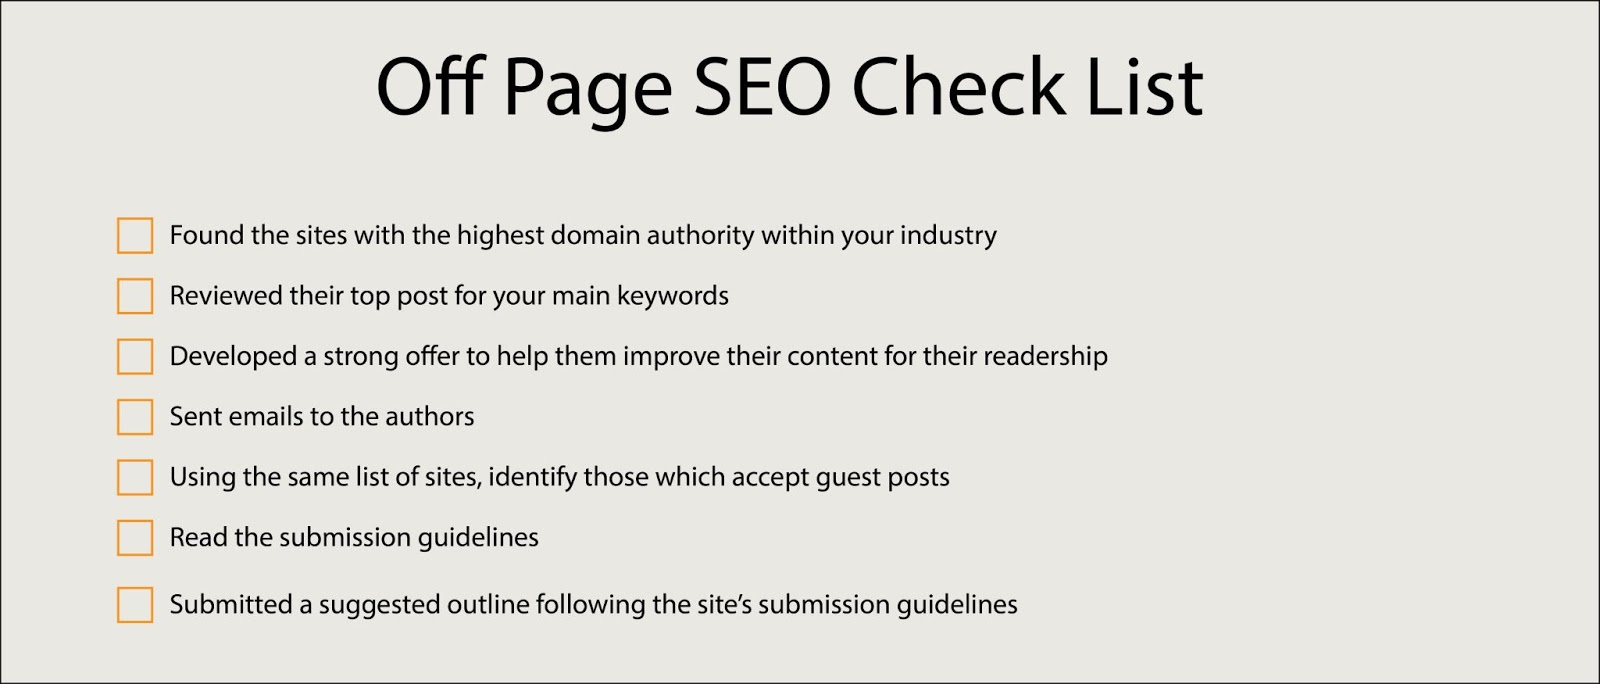 Small business SEO services Off Page SEO Checklist